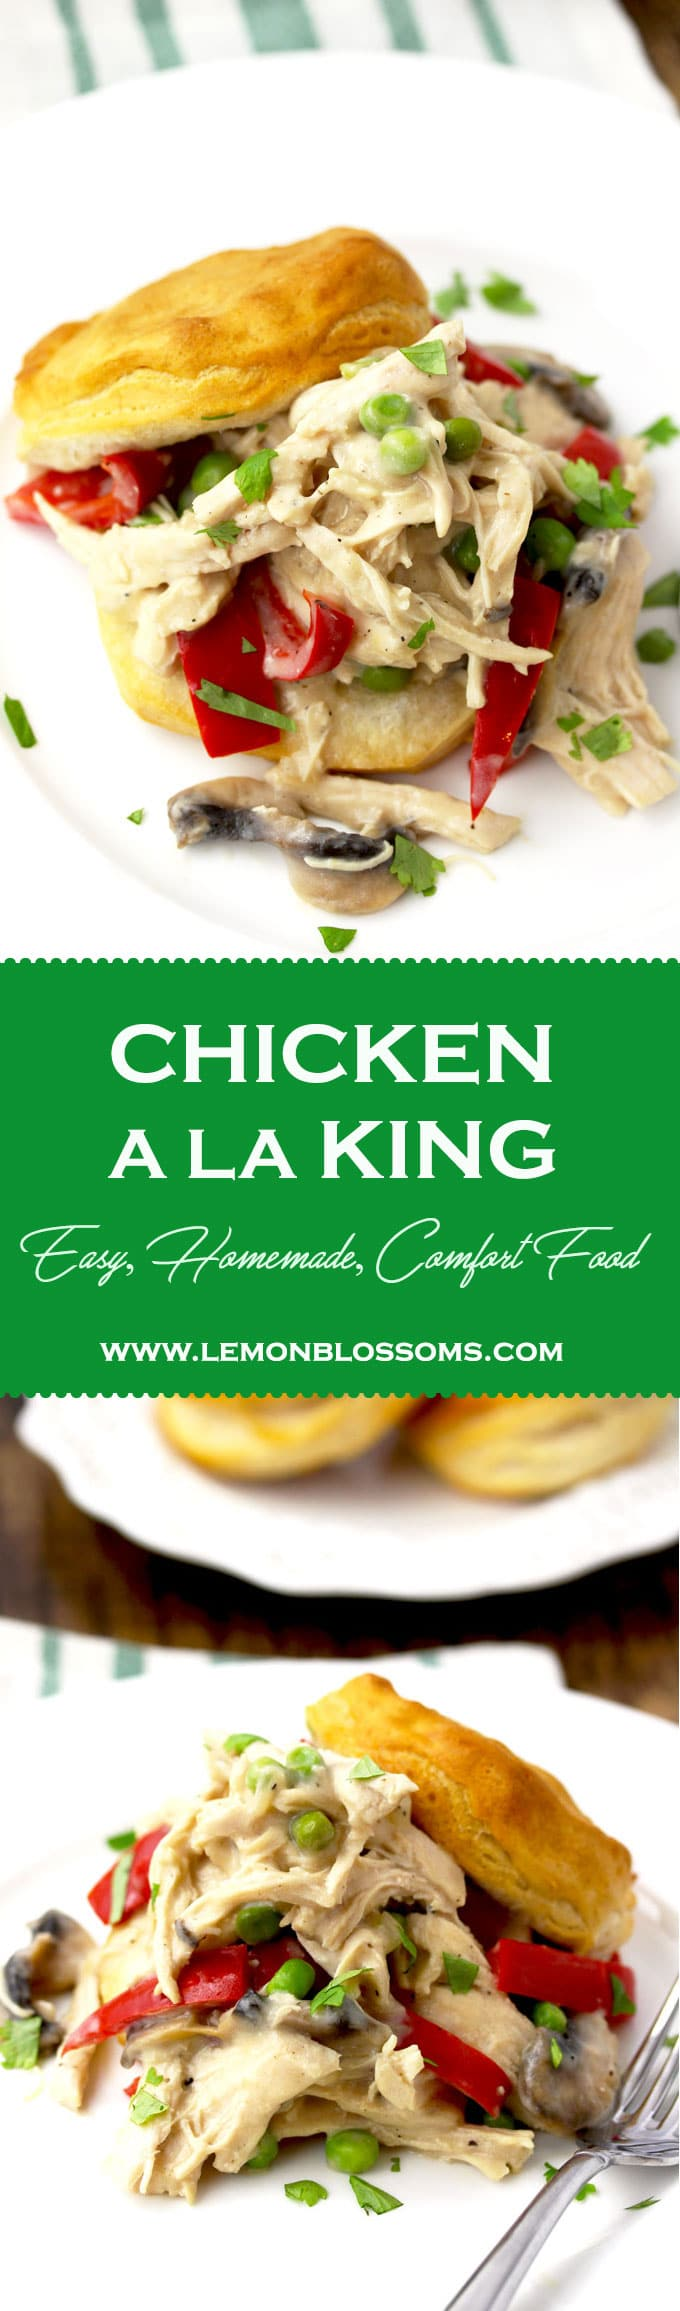 This easy Chicken A La King recipe is comfort food to the max. Made from scratch with tender chicken, mushrooms, red bell peppers and peas in a super creamy white sauce. Serve it over biscuits, toast, rice or in a pastry shell for a fancier presentation! #chicken #recipe #comfortfood #chickenalaking